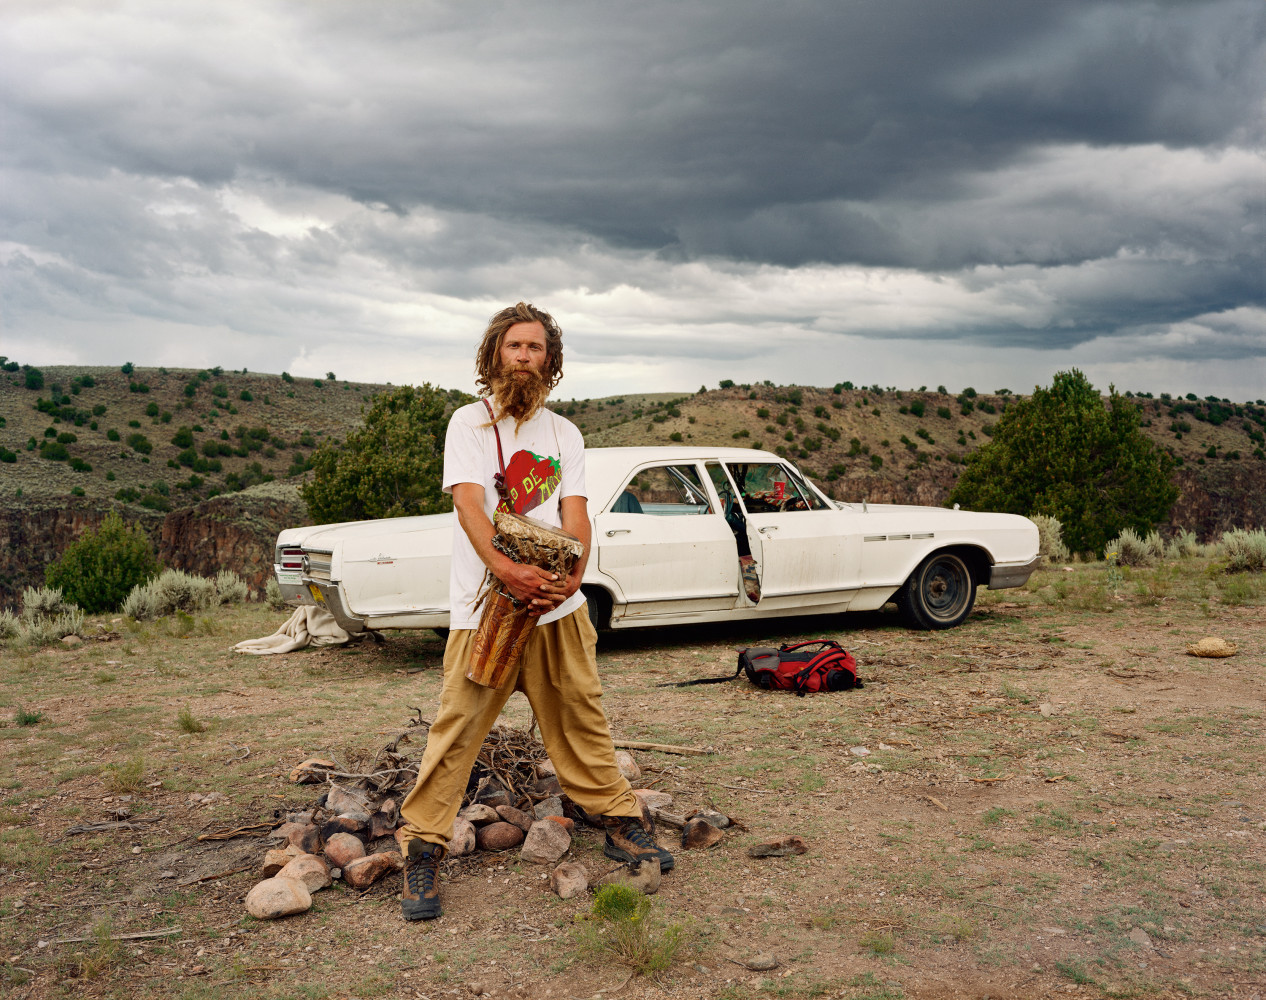 Joel Sternfeld, 'A Man at His Campsite, El Prado, New Mexico, August 1999', 1999